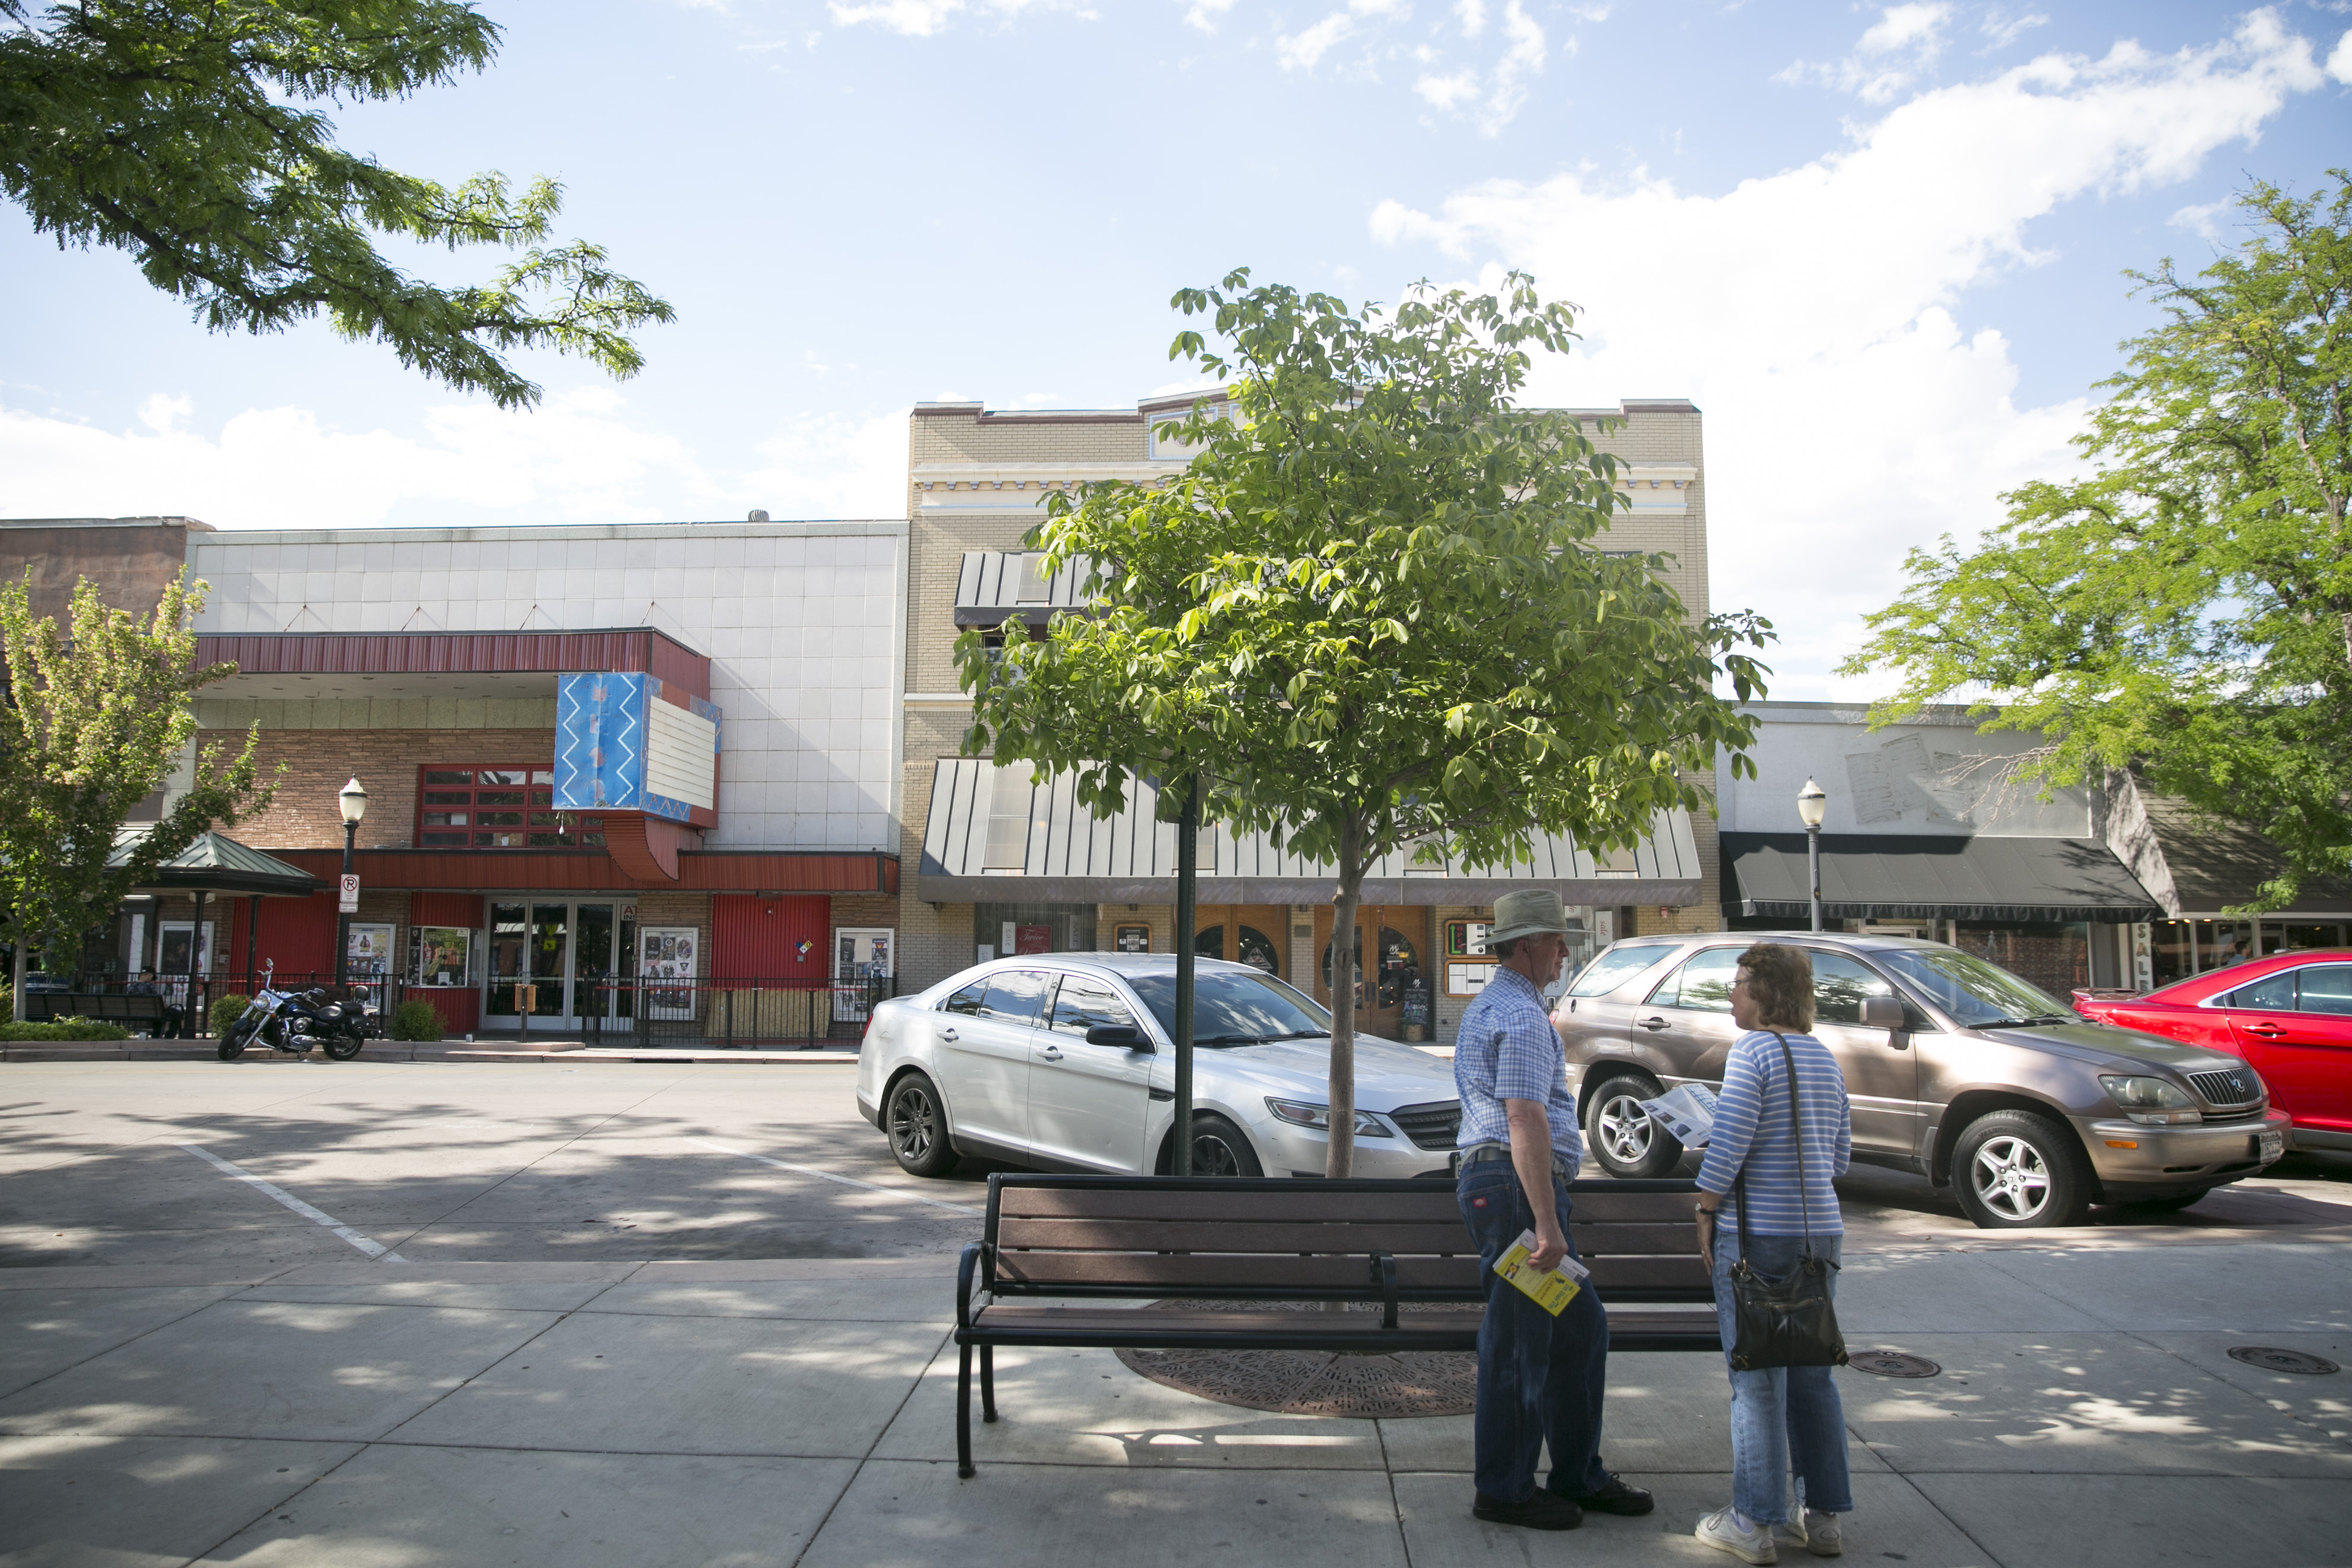 <p>Grand Junction's historic Main Street on Friday, July 13, 2018.</p>